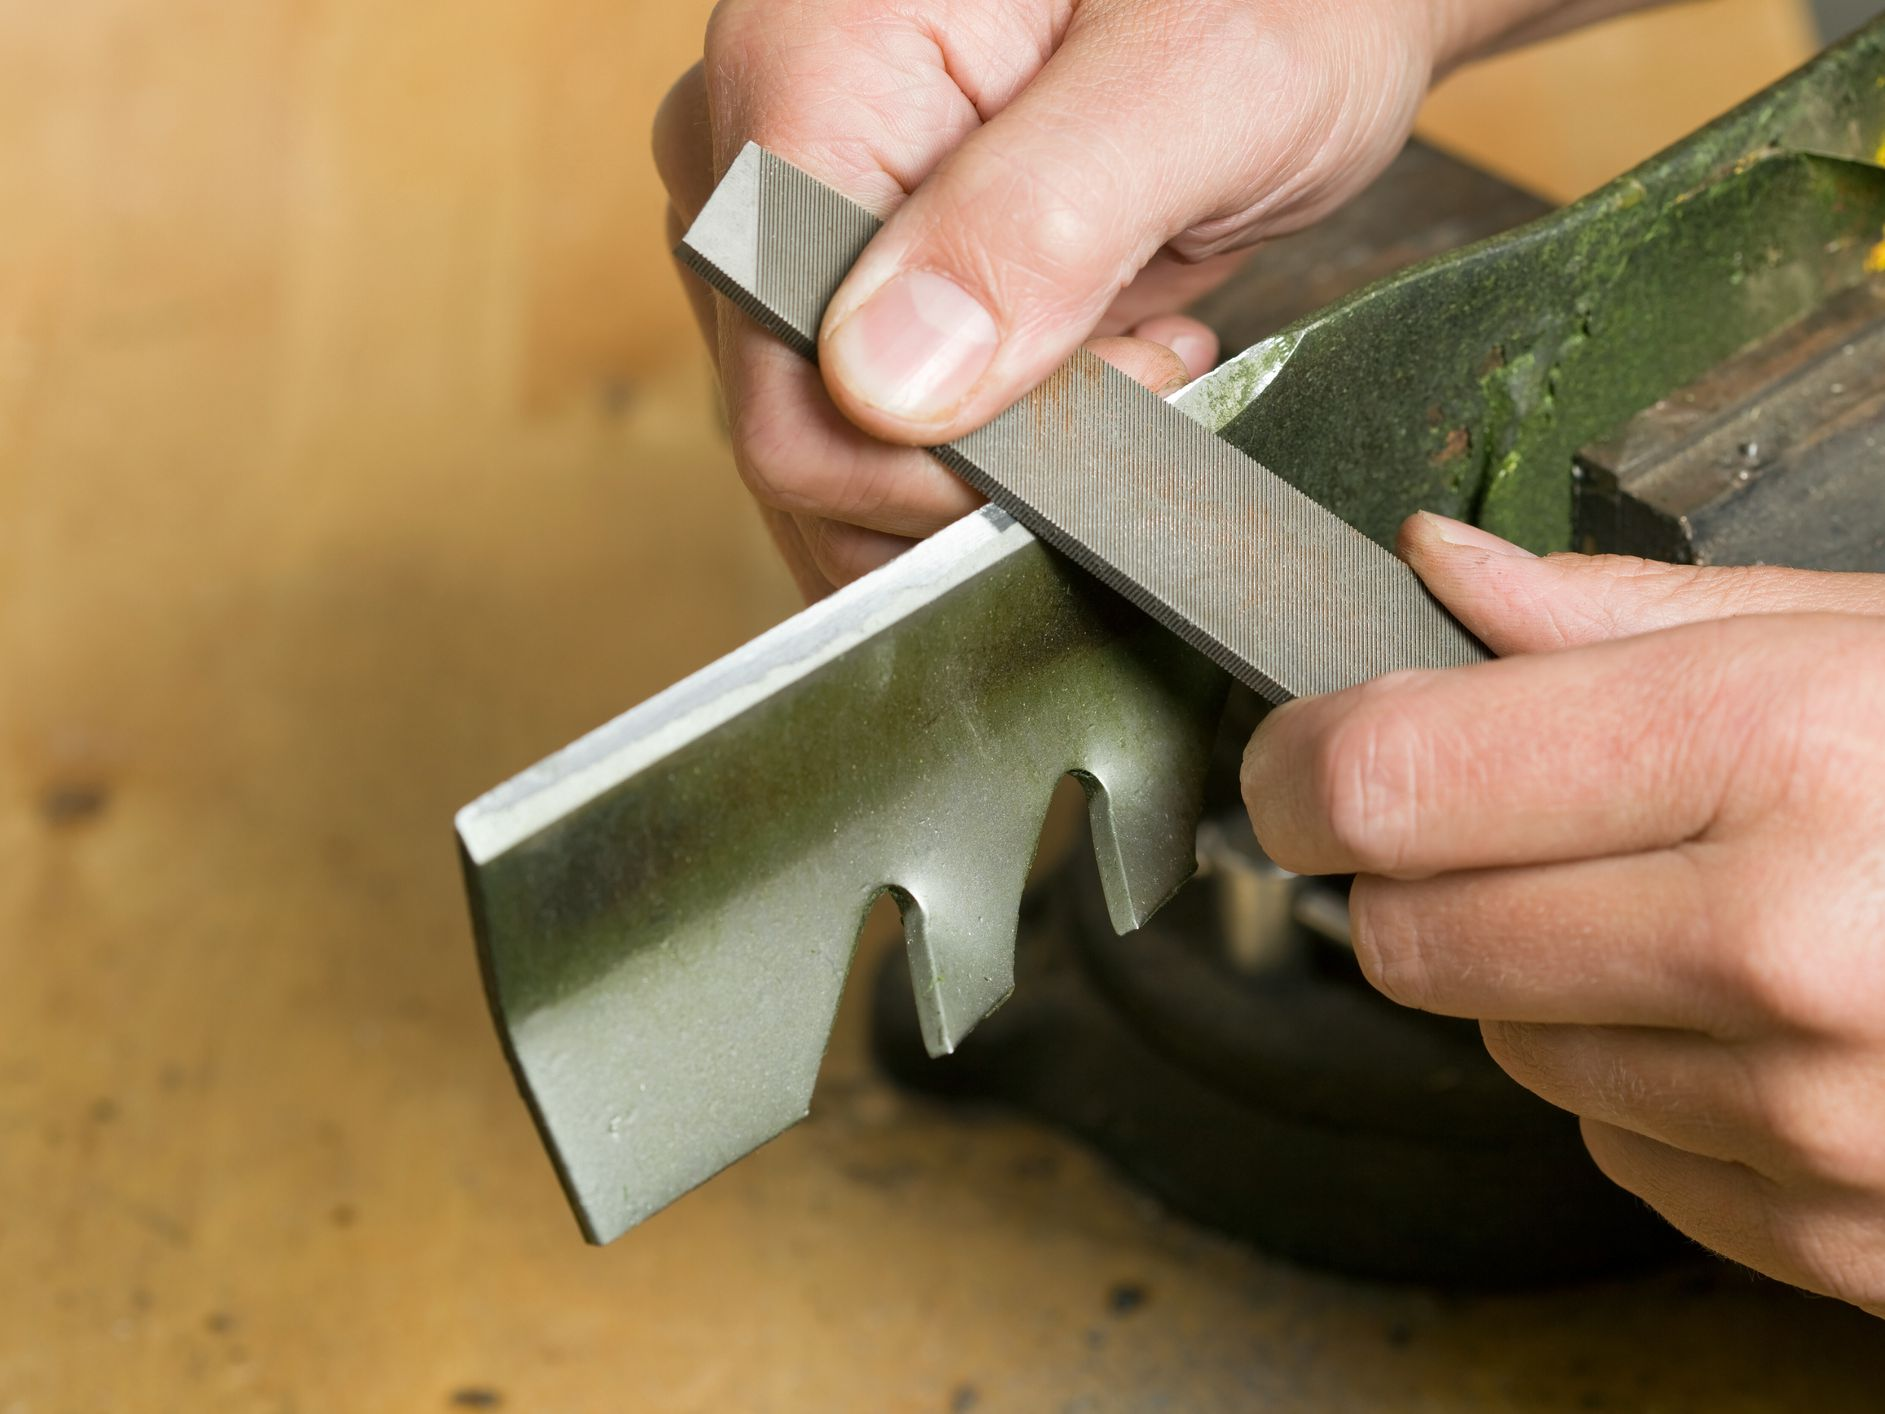 How to Sharpen Lawn Mower Blades Safely and Effectively